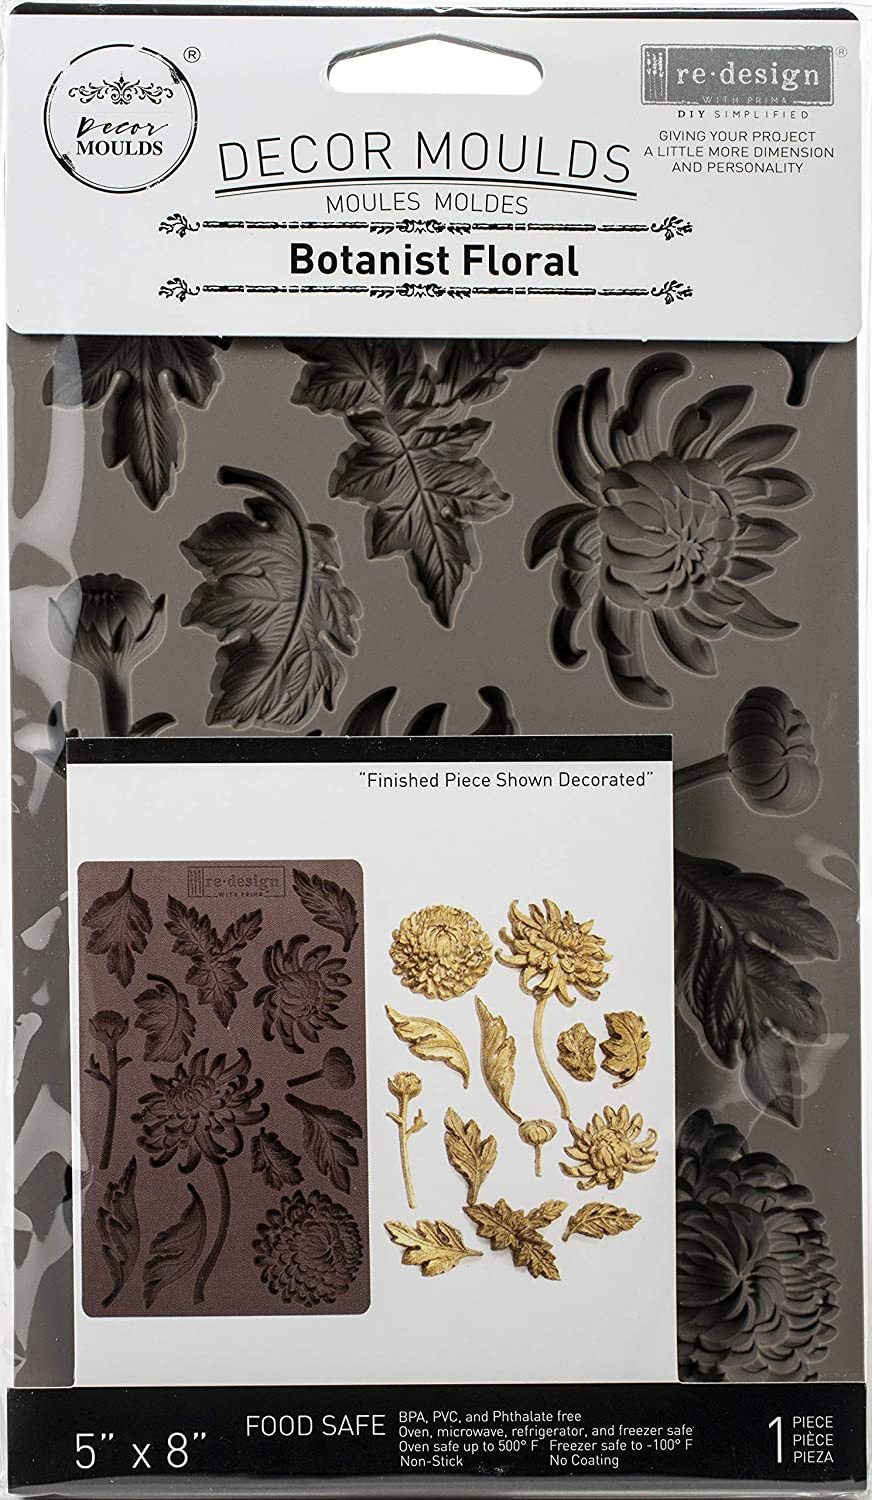 PRIMA MARKETING INC REDESIGN MOULD 5X8 BOTAN FLRL, Botanist Floral